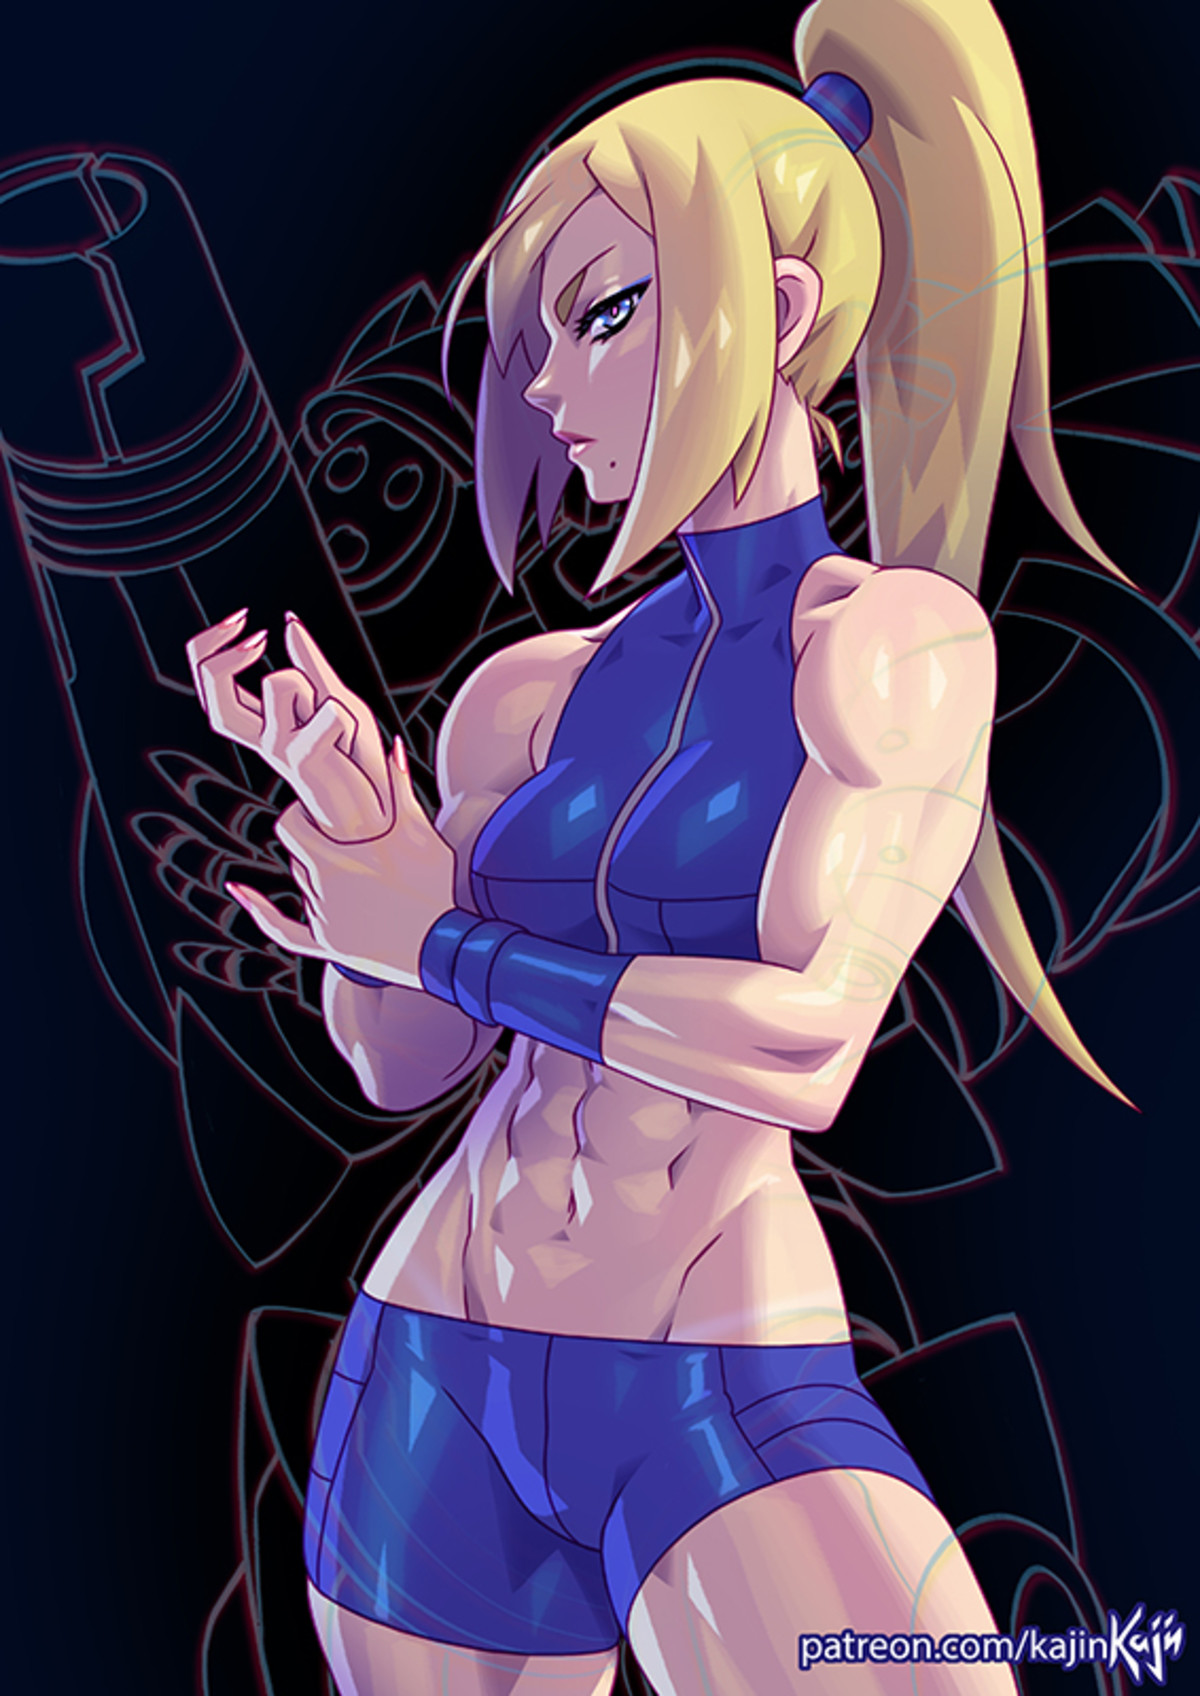 Samus. .. i just want her to end me